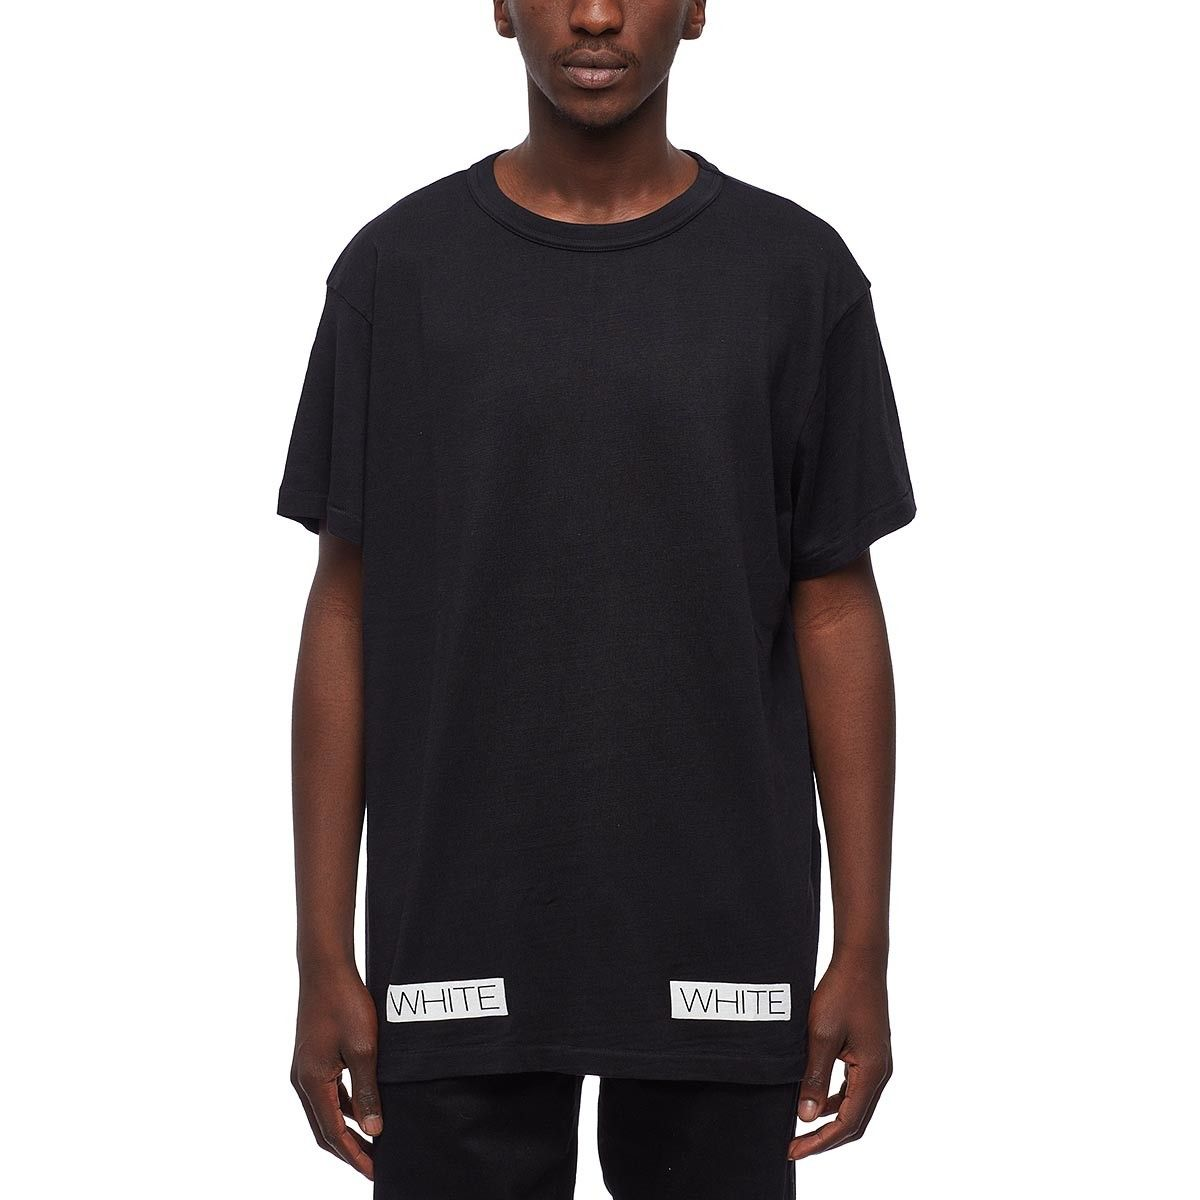 Blue collar t-shirt from the S/S2016 Off-White c/o Virgil ...